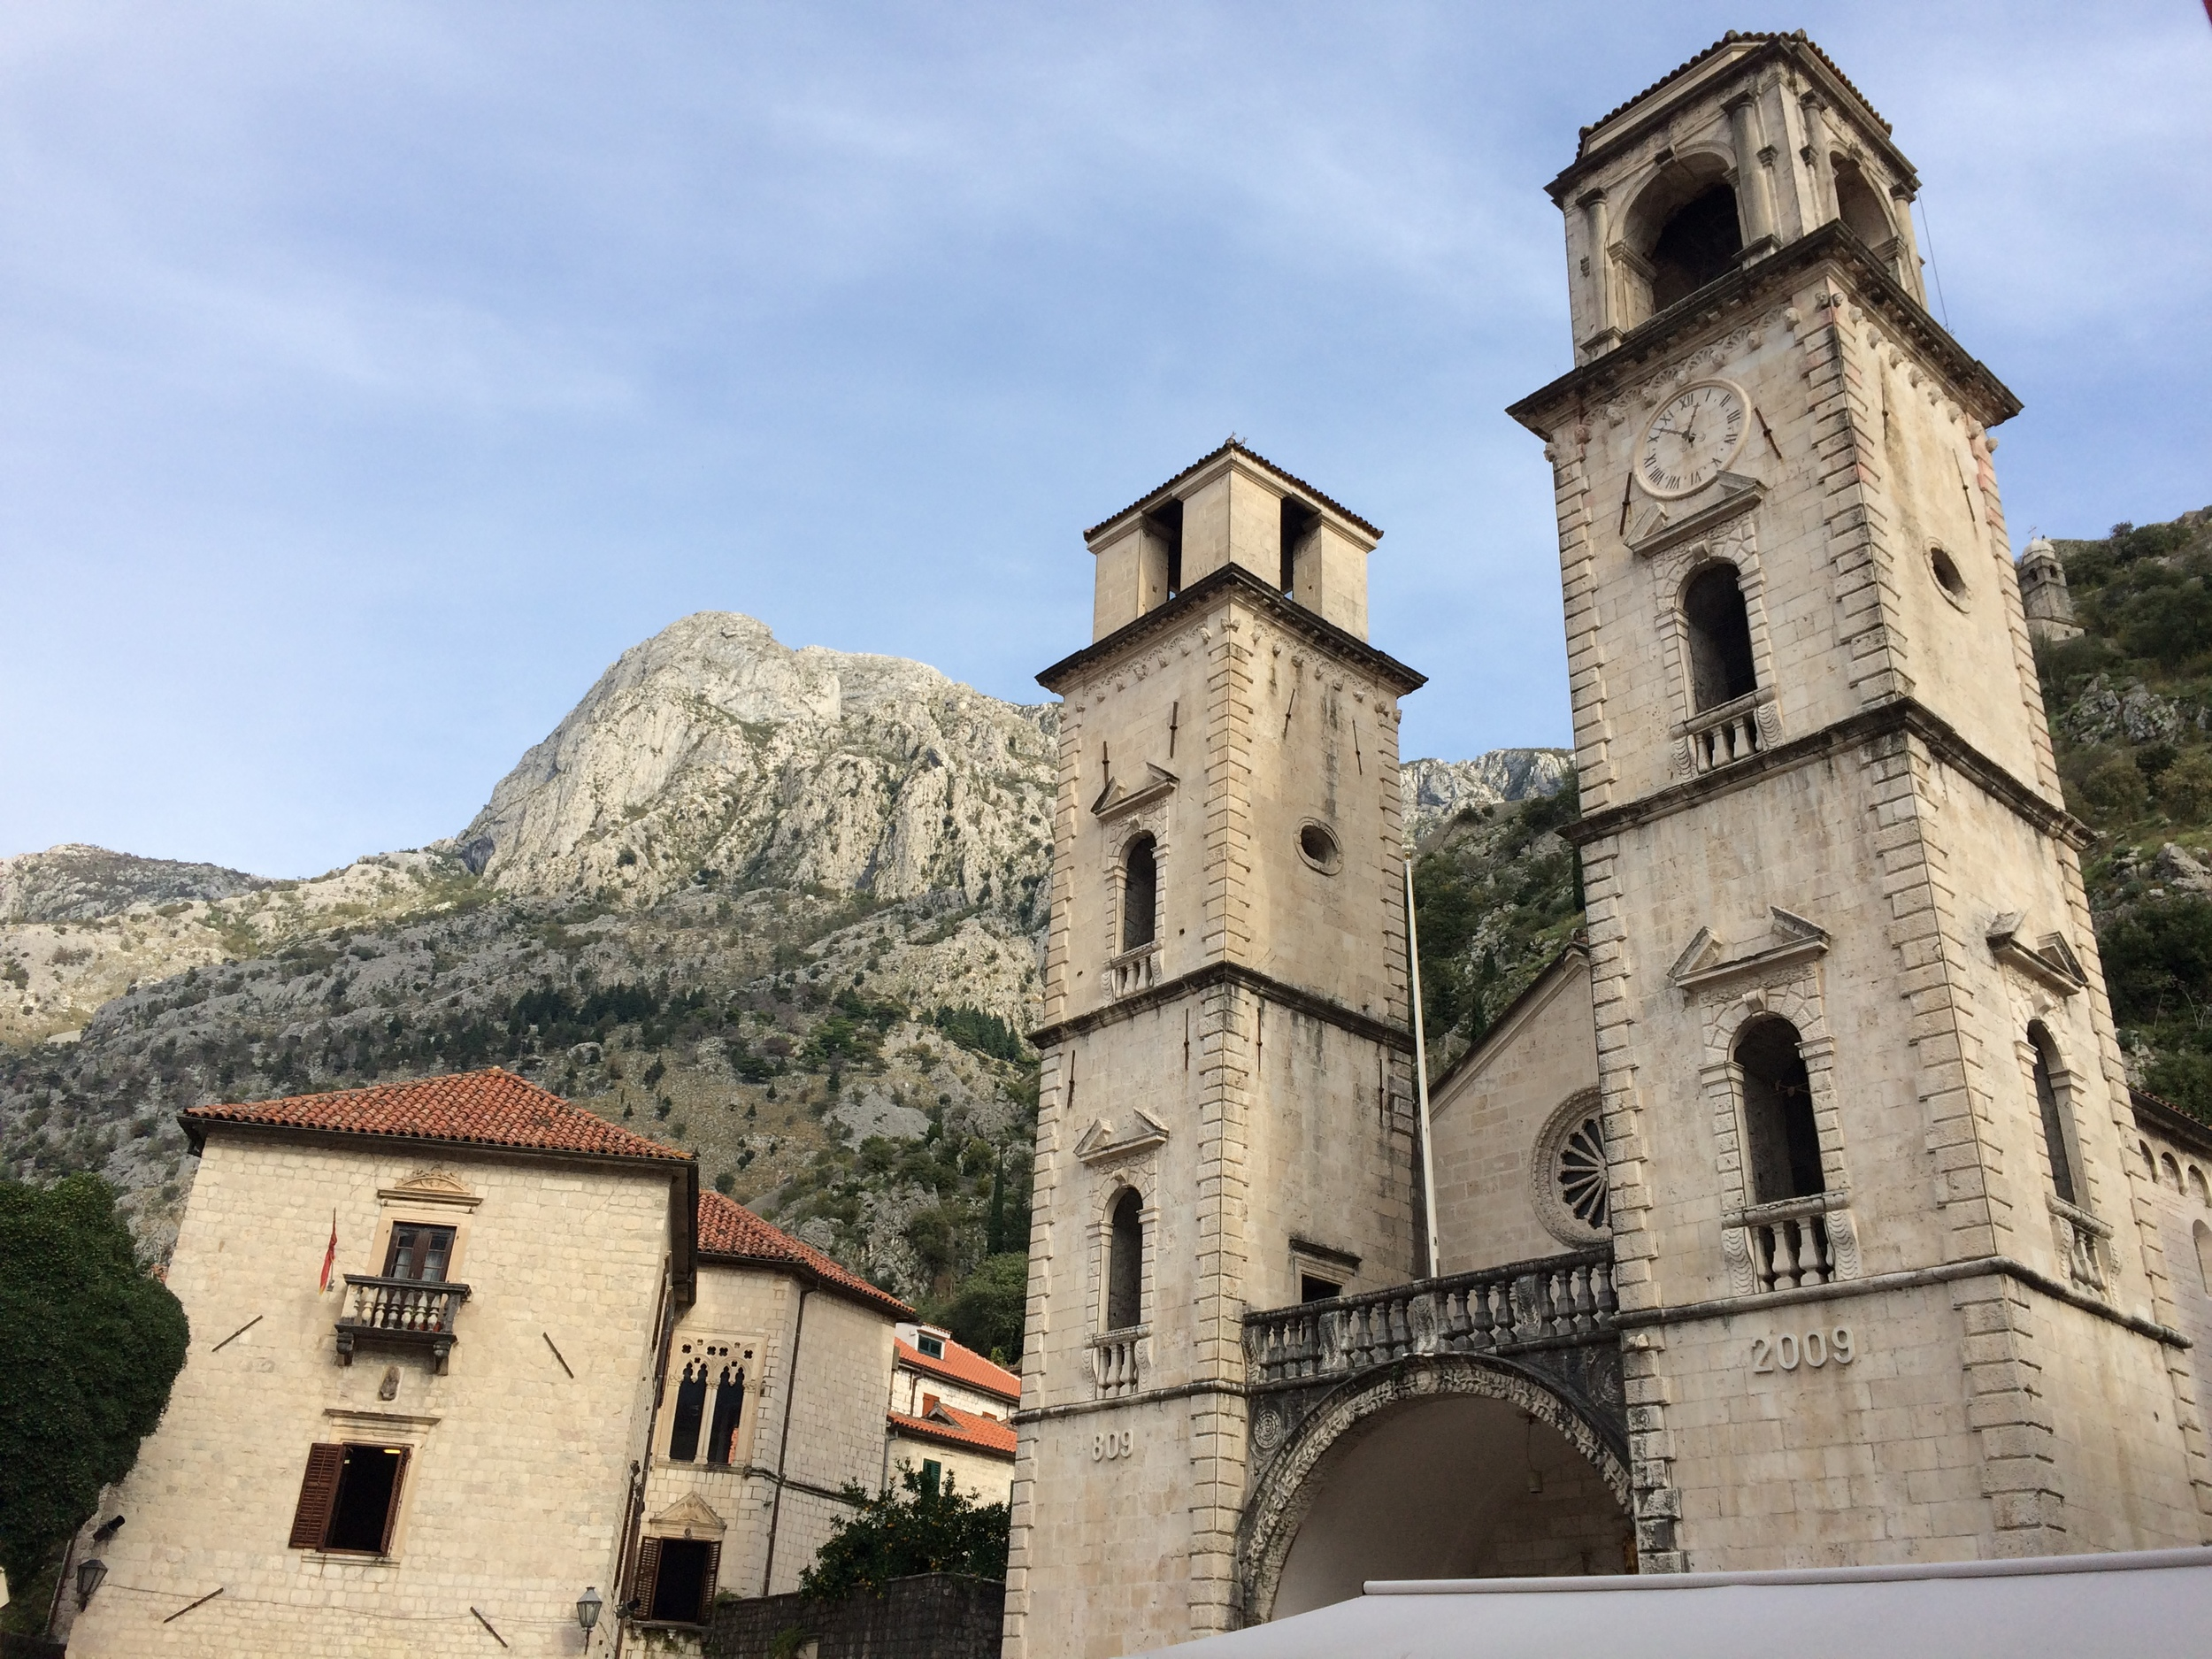 Kotor Cathedral in the center of the old town.